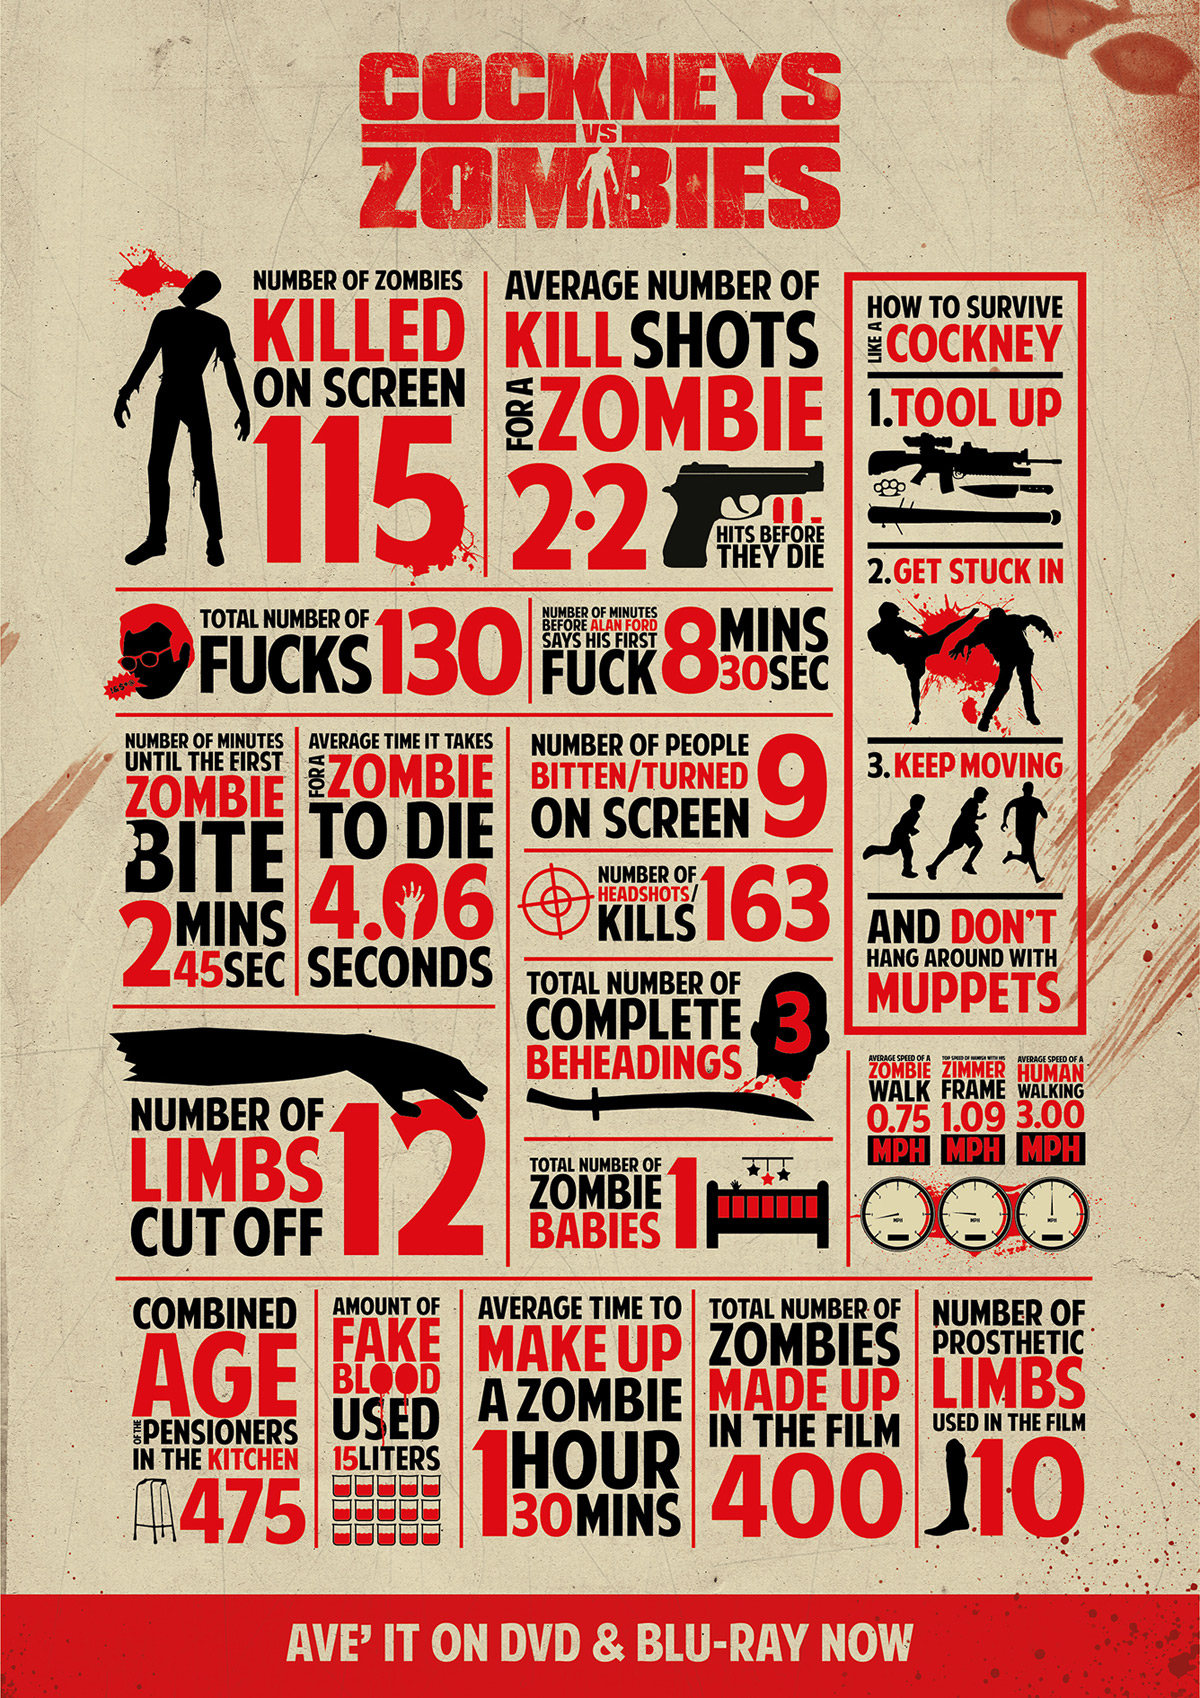 cockney-vs-zombies-infographic